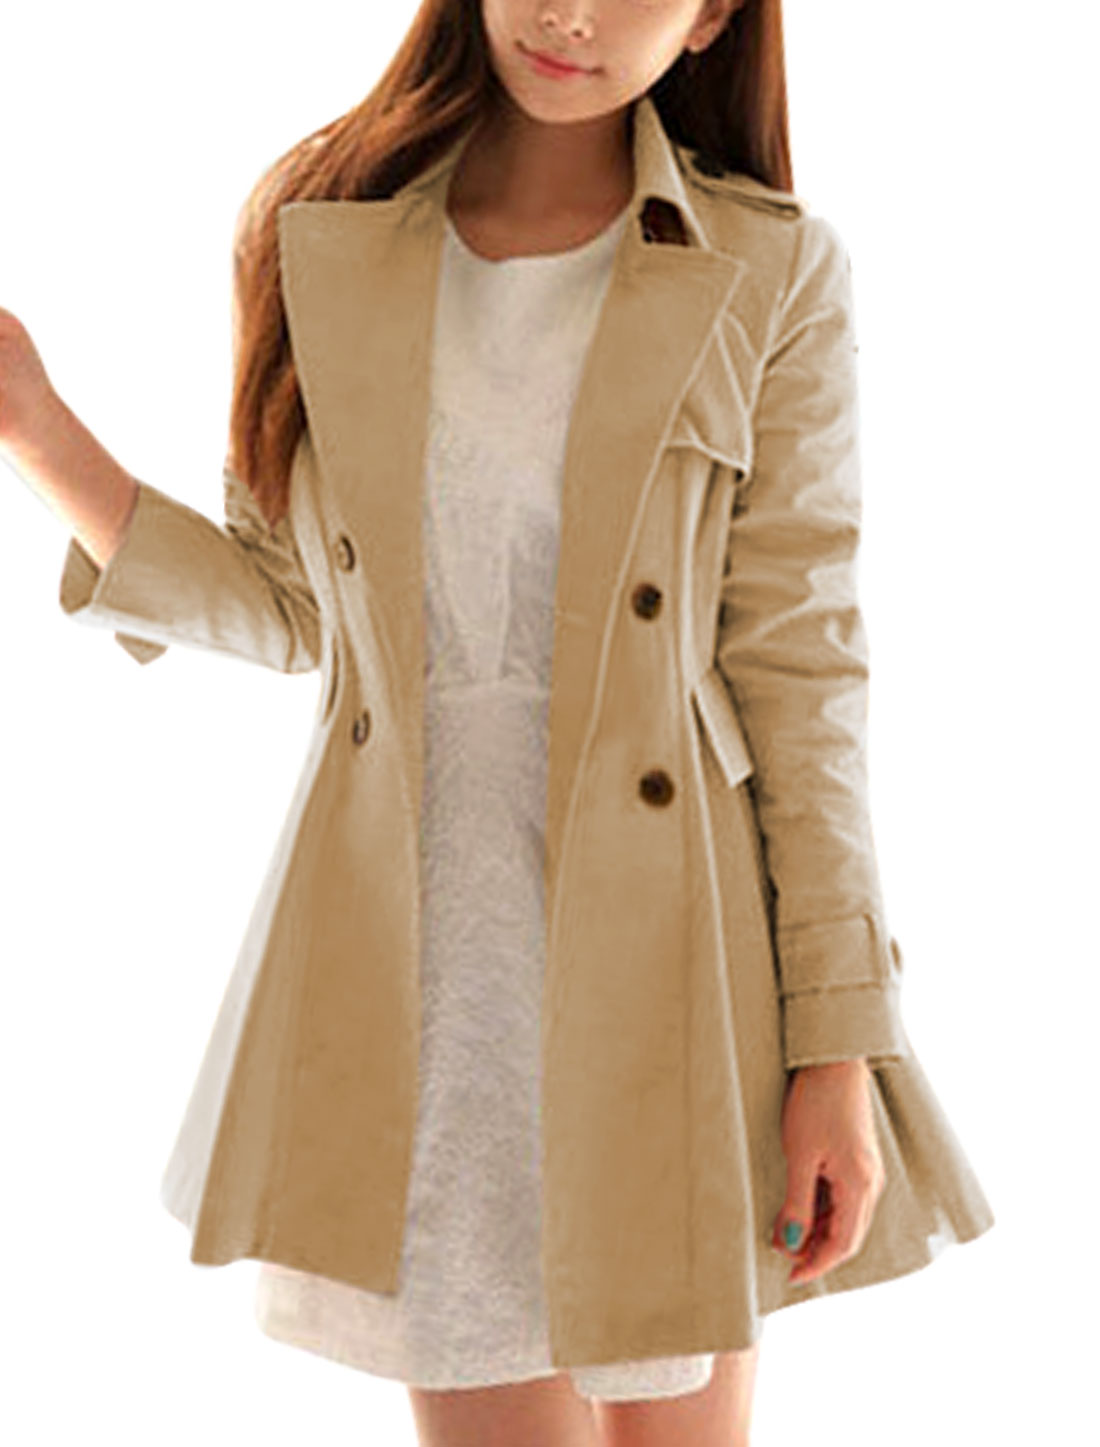 Women Single Breasted Gun Flap Decor Trench Coat w Waist Strap Khaki S